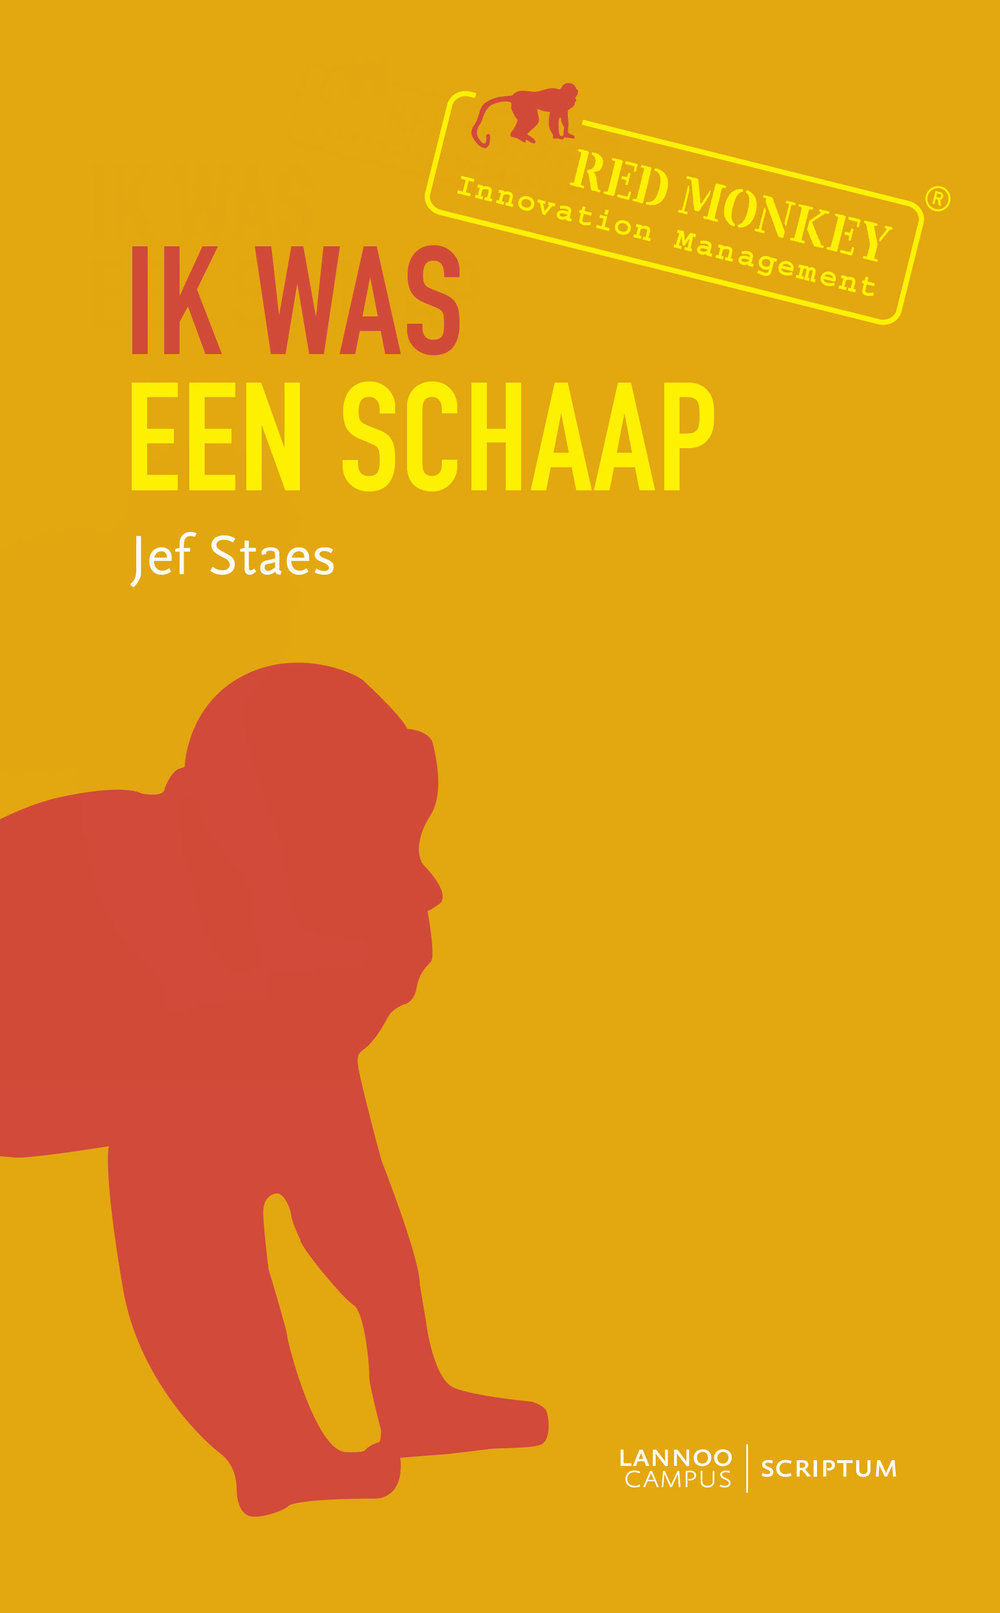 Cover 3 - Ik was een schaap_high resolution.jpg